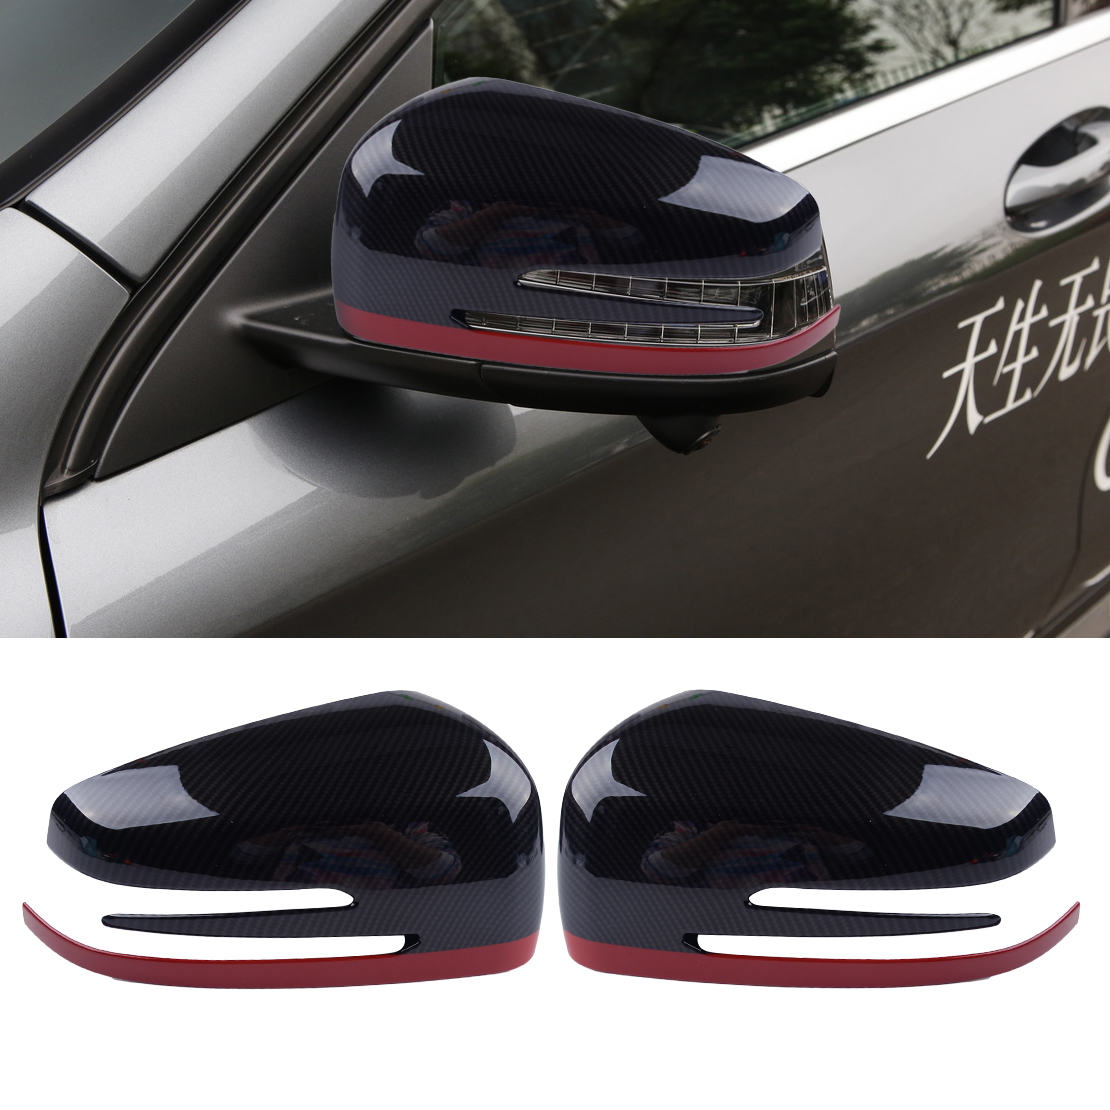 CITALL 2Pcs ABS Rear View Mirror Protection Trim Cover Fit for Mercedes Benz A CLA GLA GLK Class W117 W176 2014 2015 2016 2017